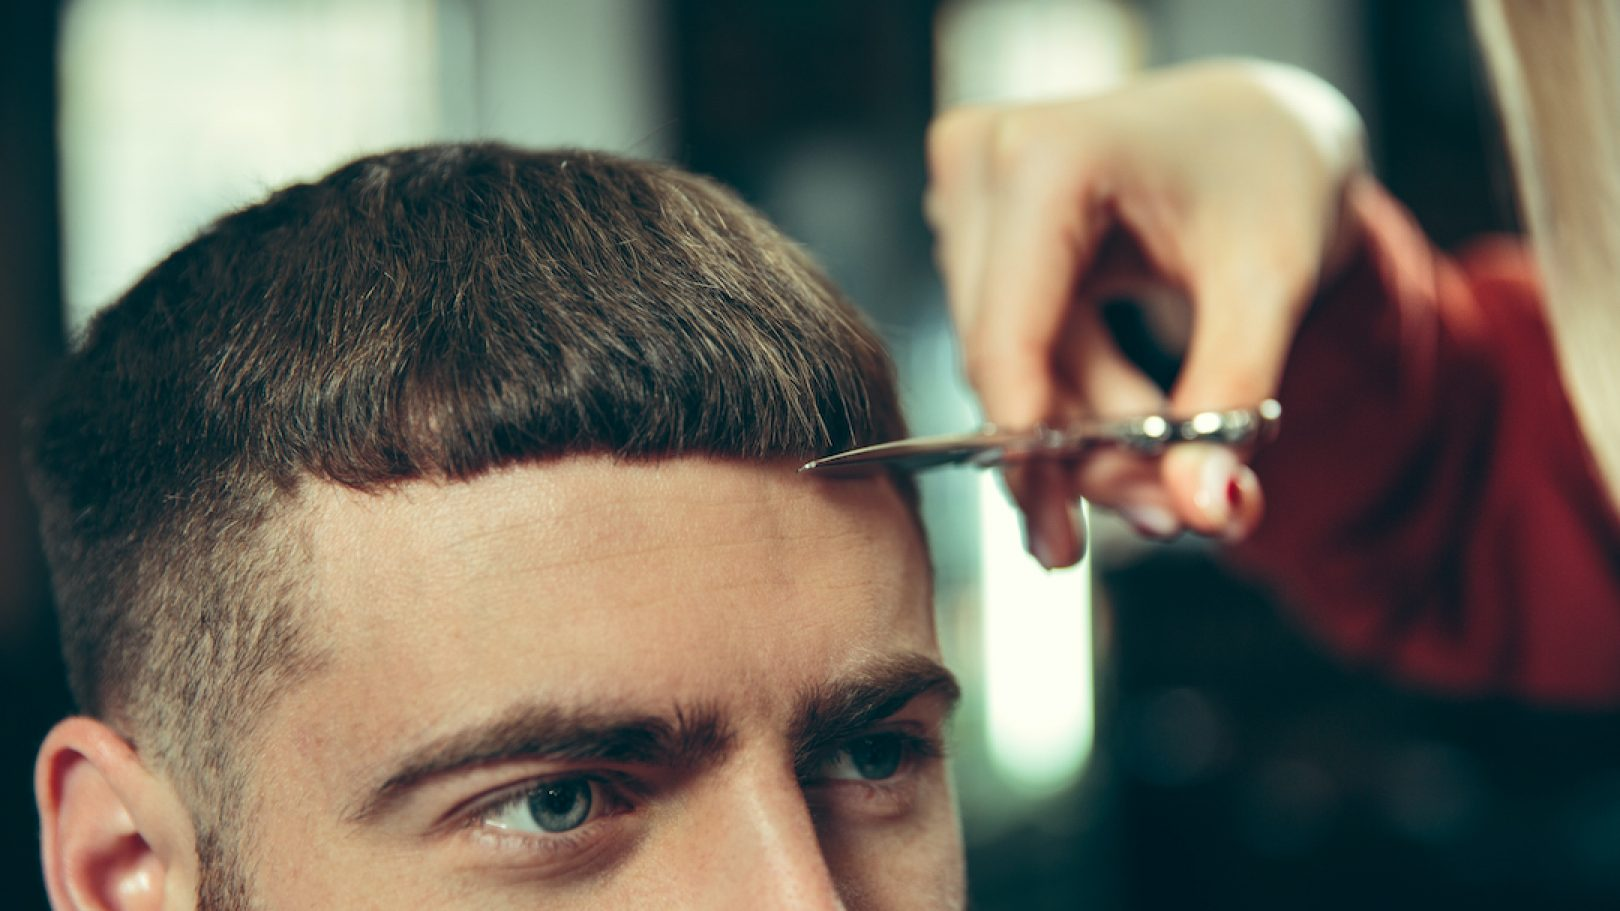 12 essential hair products for men to style hair at home